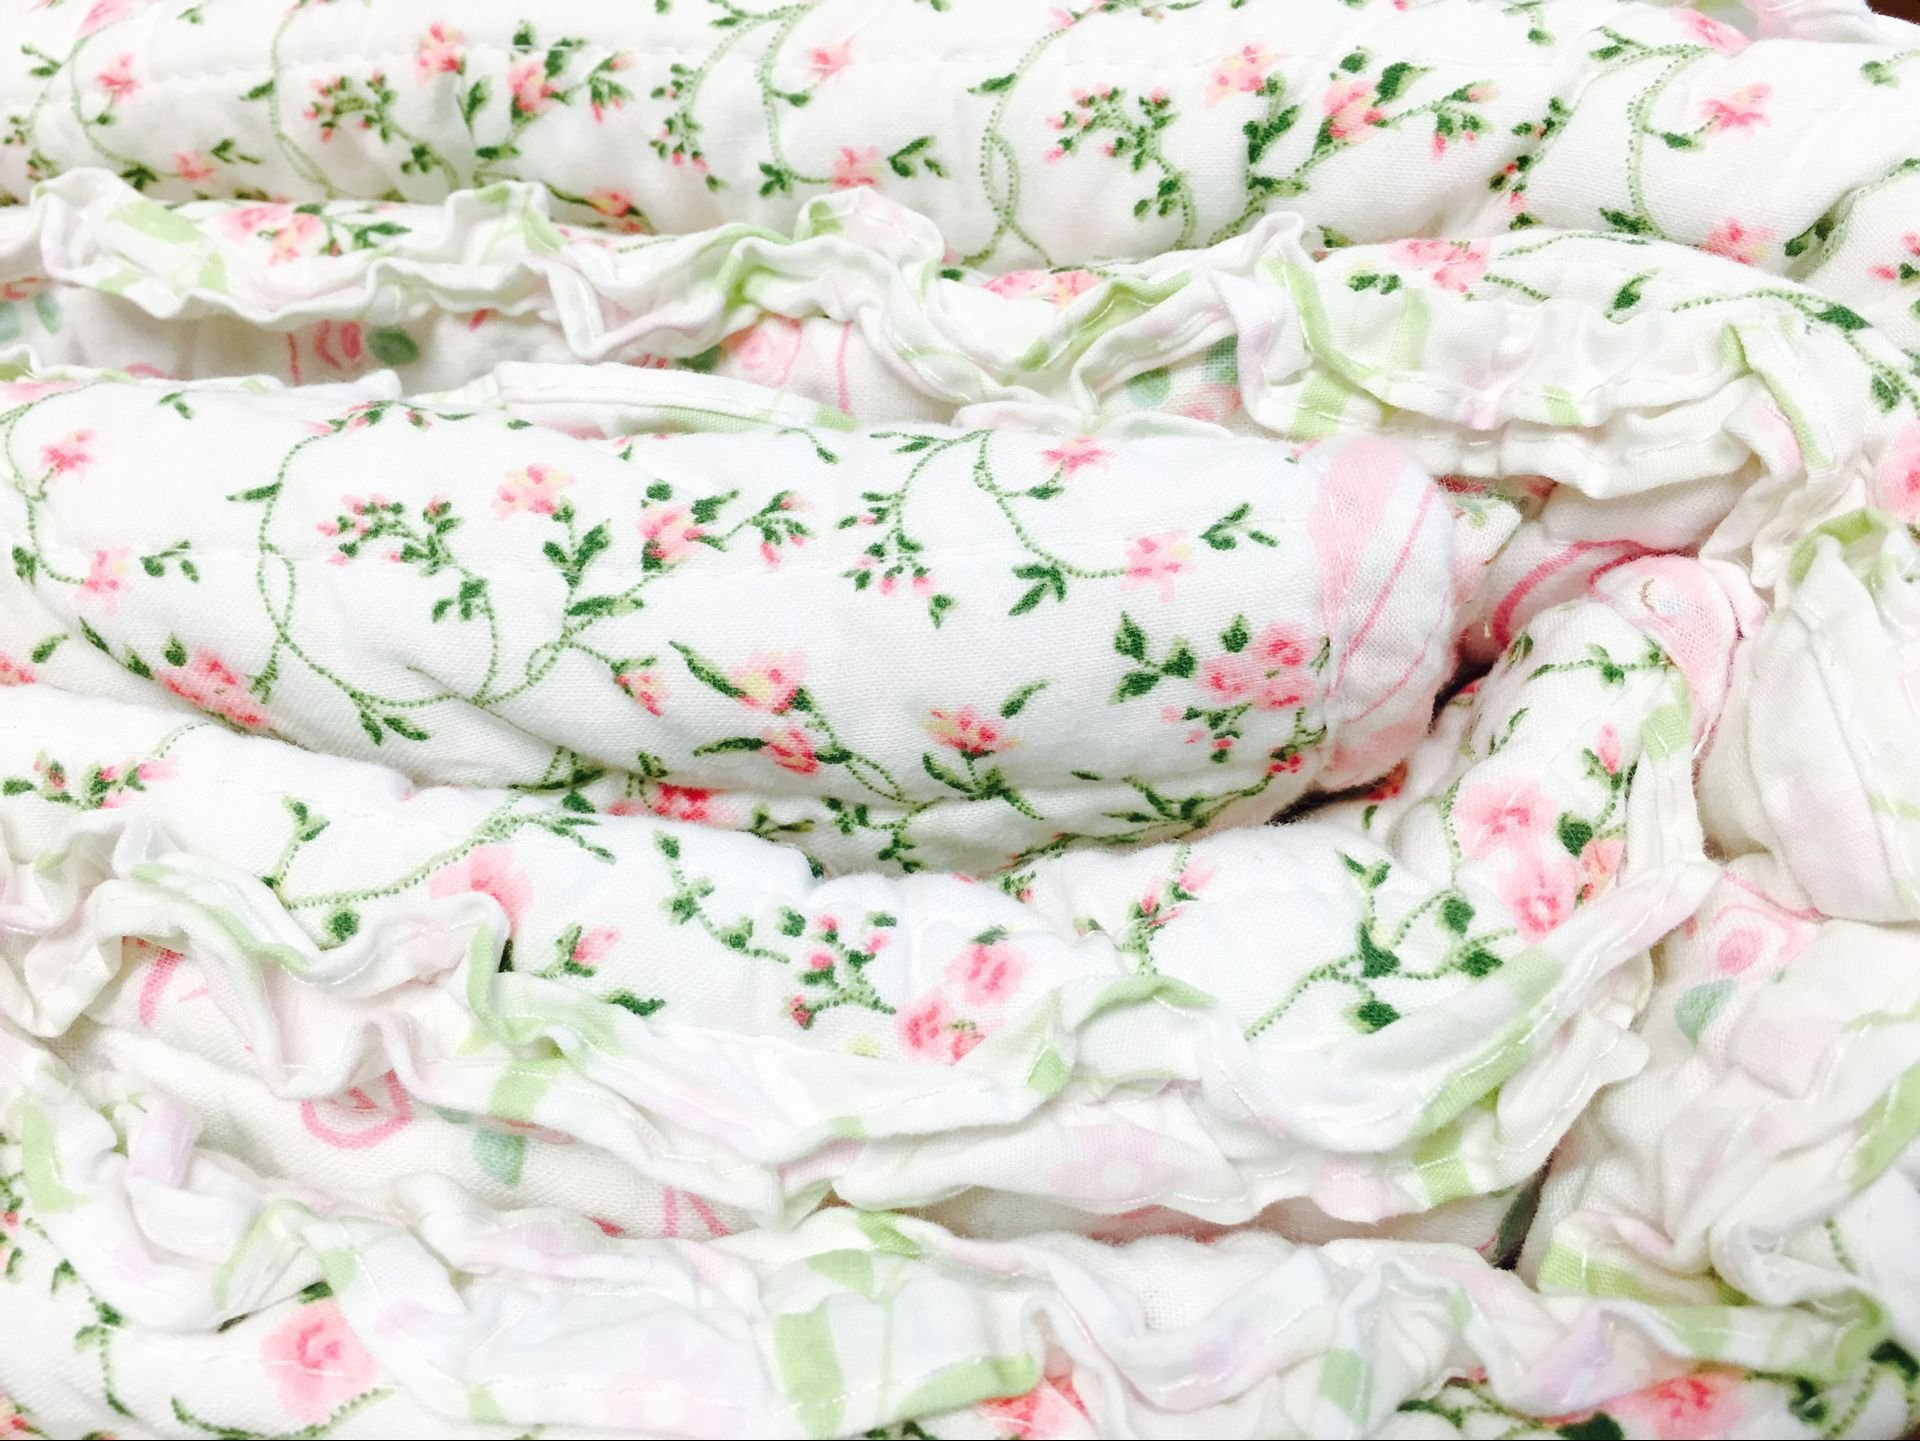 Cozy Line Home Fashions Pink Rose Romantic Chic Lace Bedding Quilt Set, Floral Flower Printed 3D Stripe 100% COTTON Reversible Coverlet Bedspread Gifts for Girls Women (Queen - 3 piece) by Cozy Line Home Fashions (Image #3)